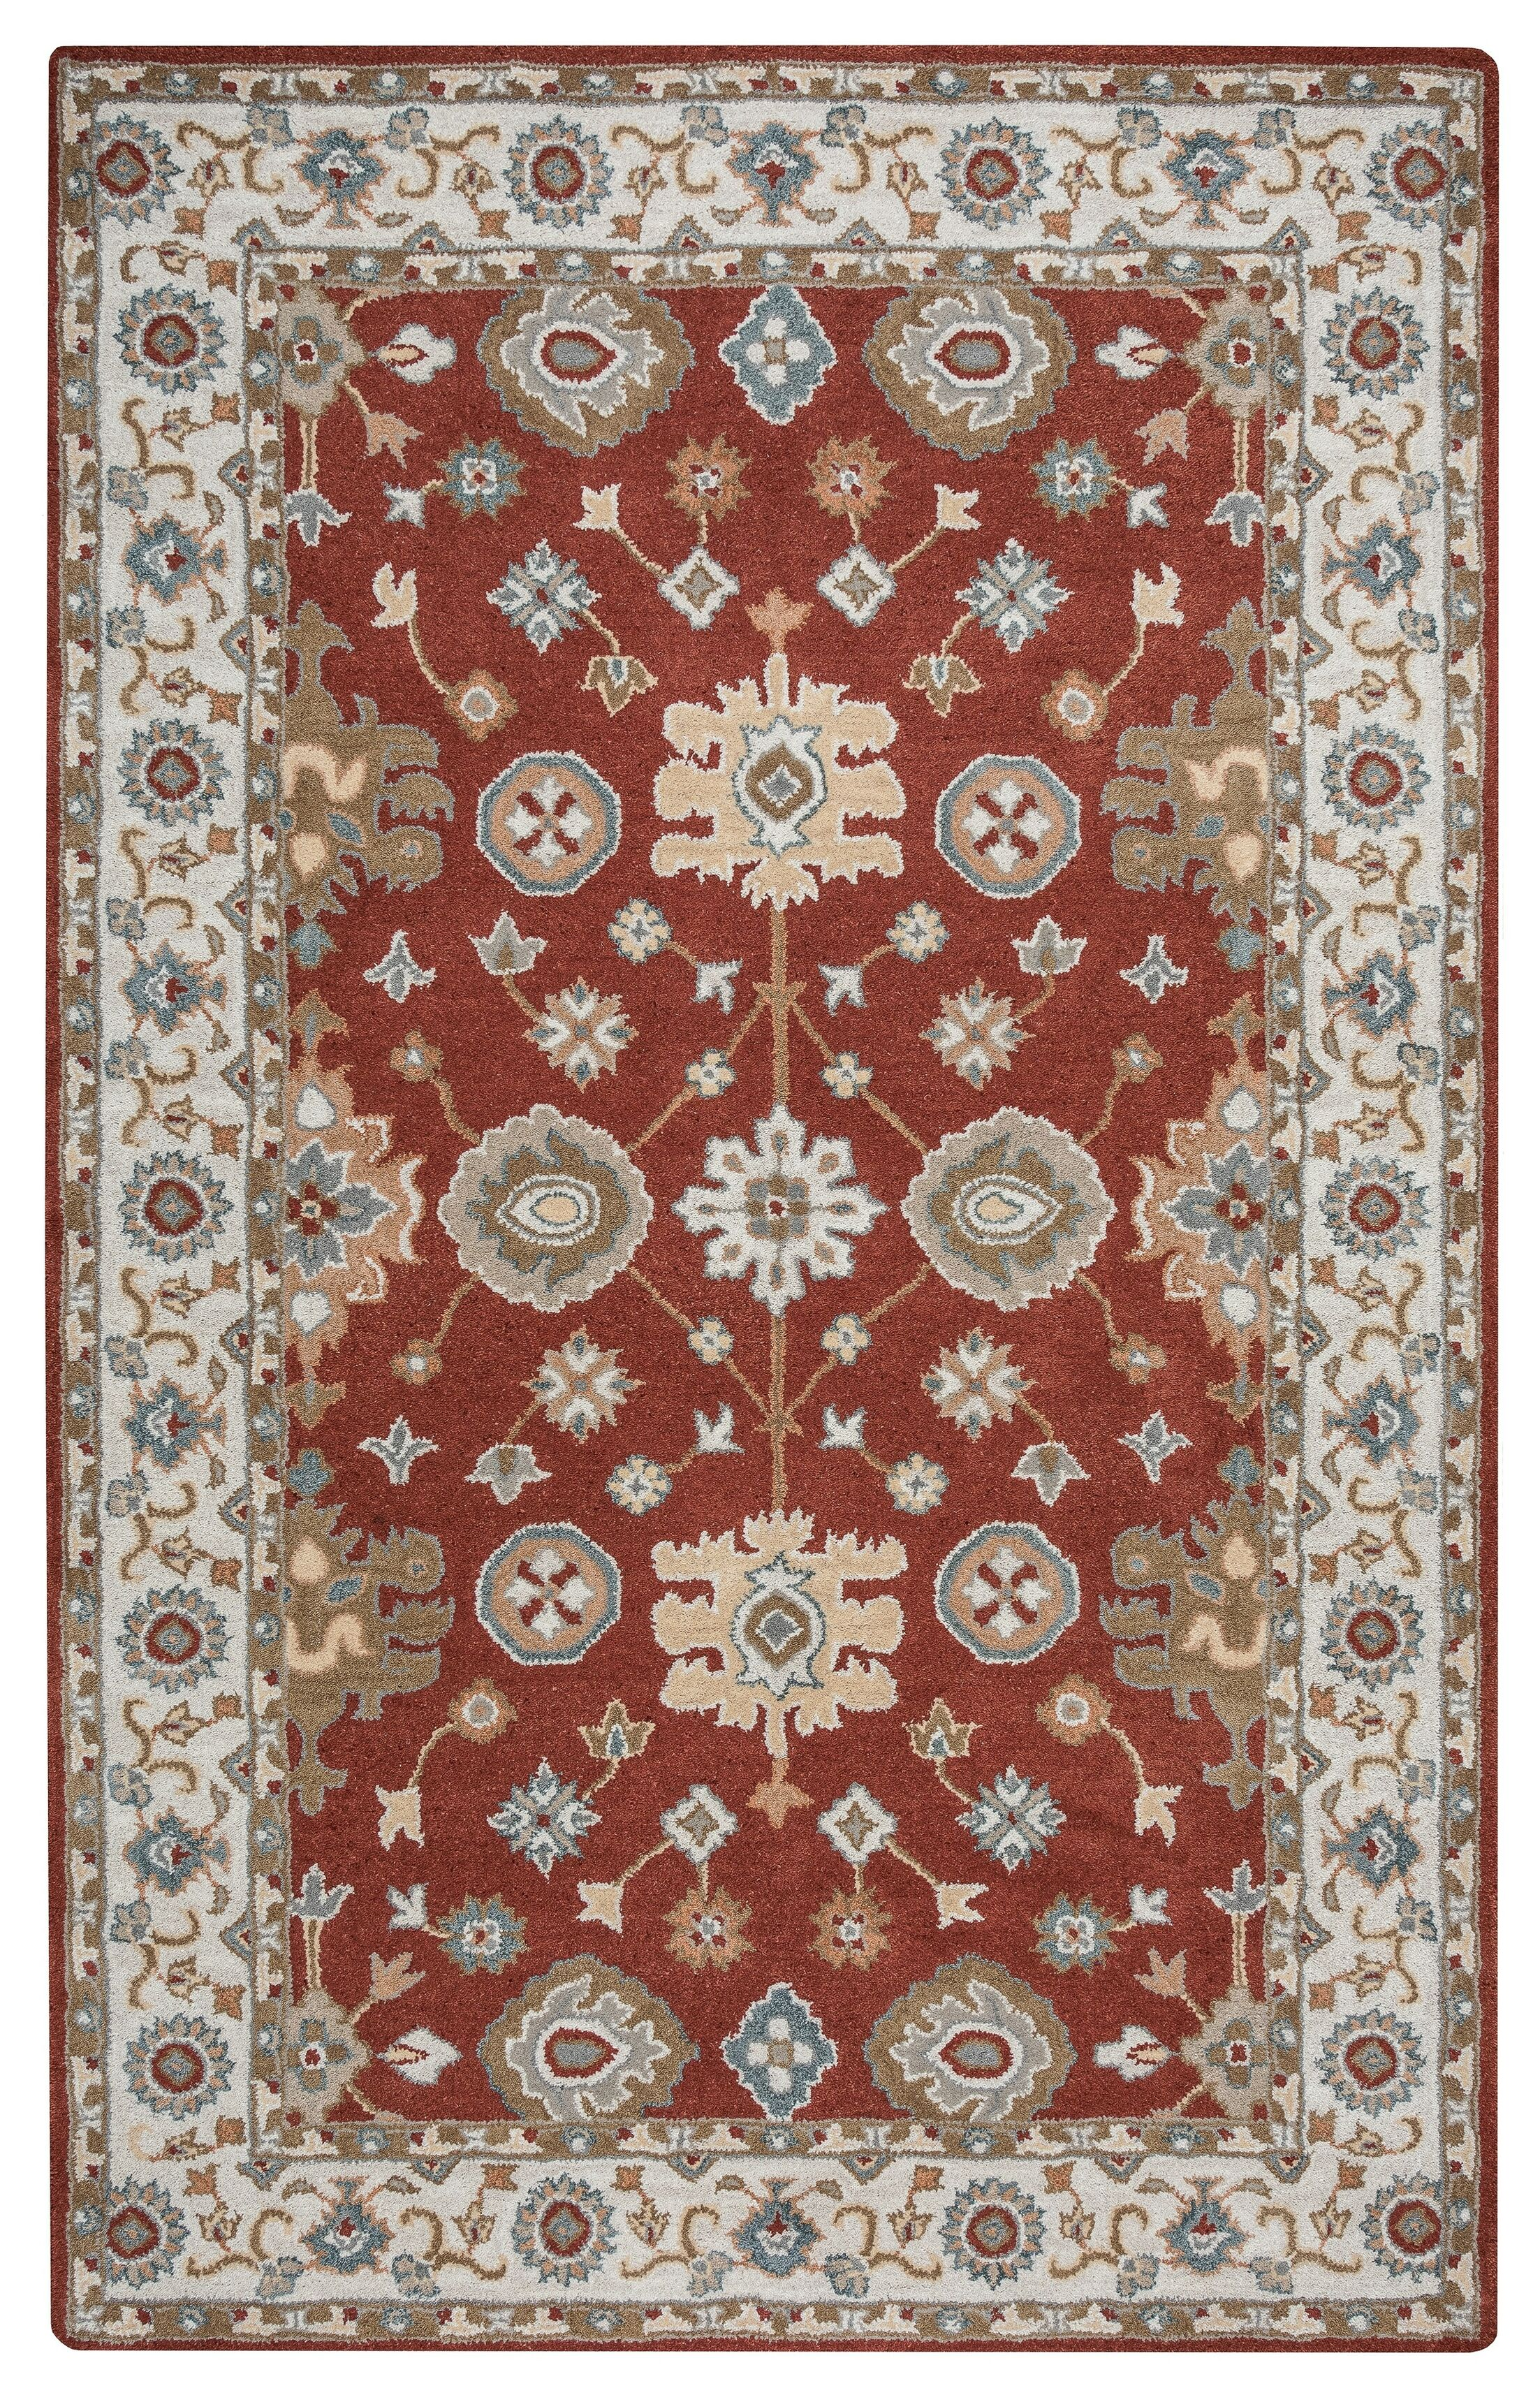 Lamothe Hand-Tufted Rust Area Rug Rug Size: Rectangle 8' x 10'